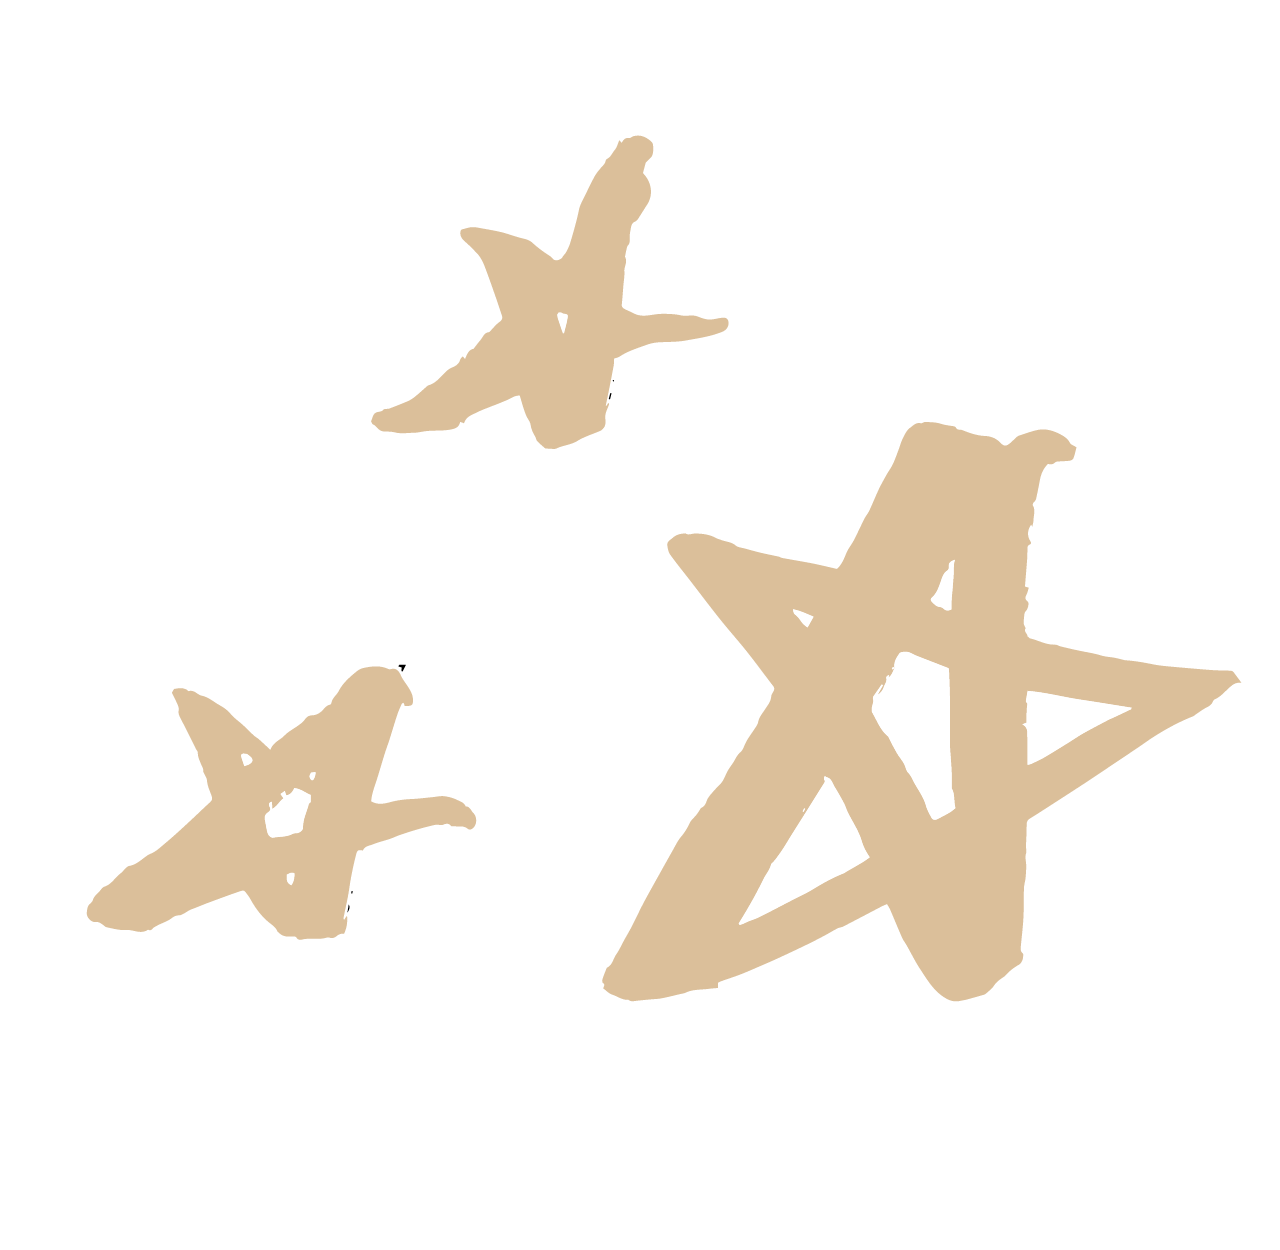 stars2.png